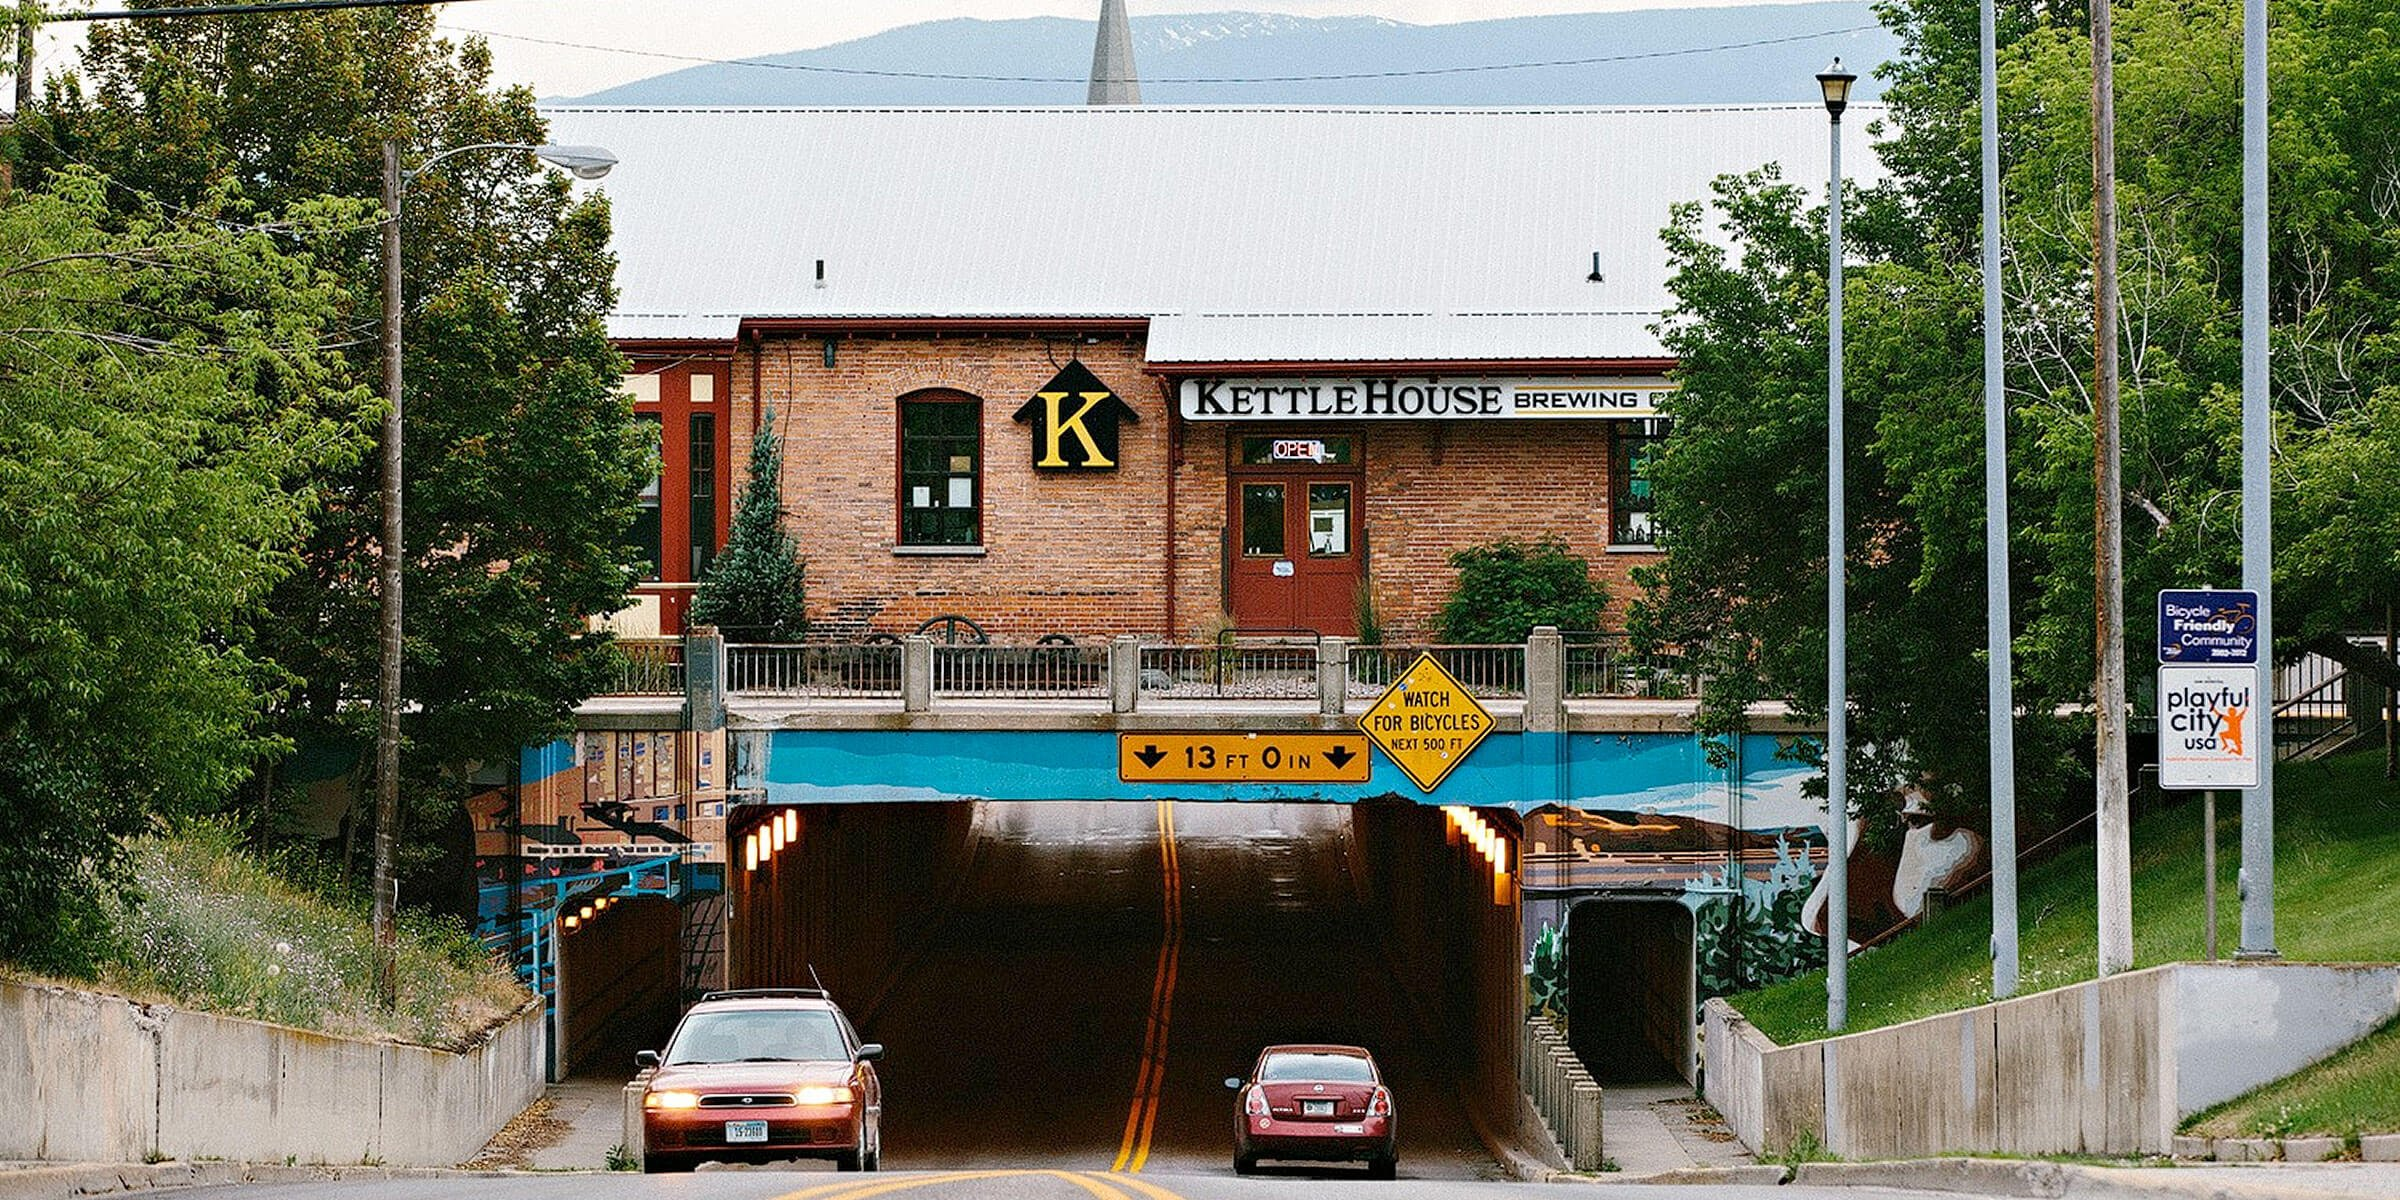 Outside the Northside Brewery location of KettleHouse Brewing Co. in Missoula, Montana